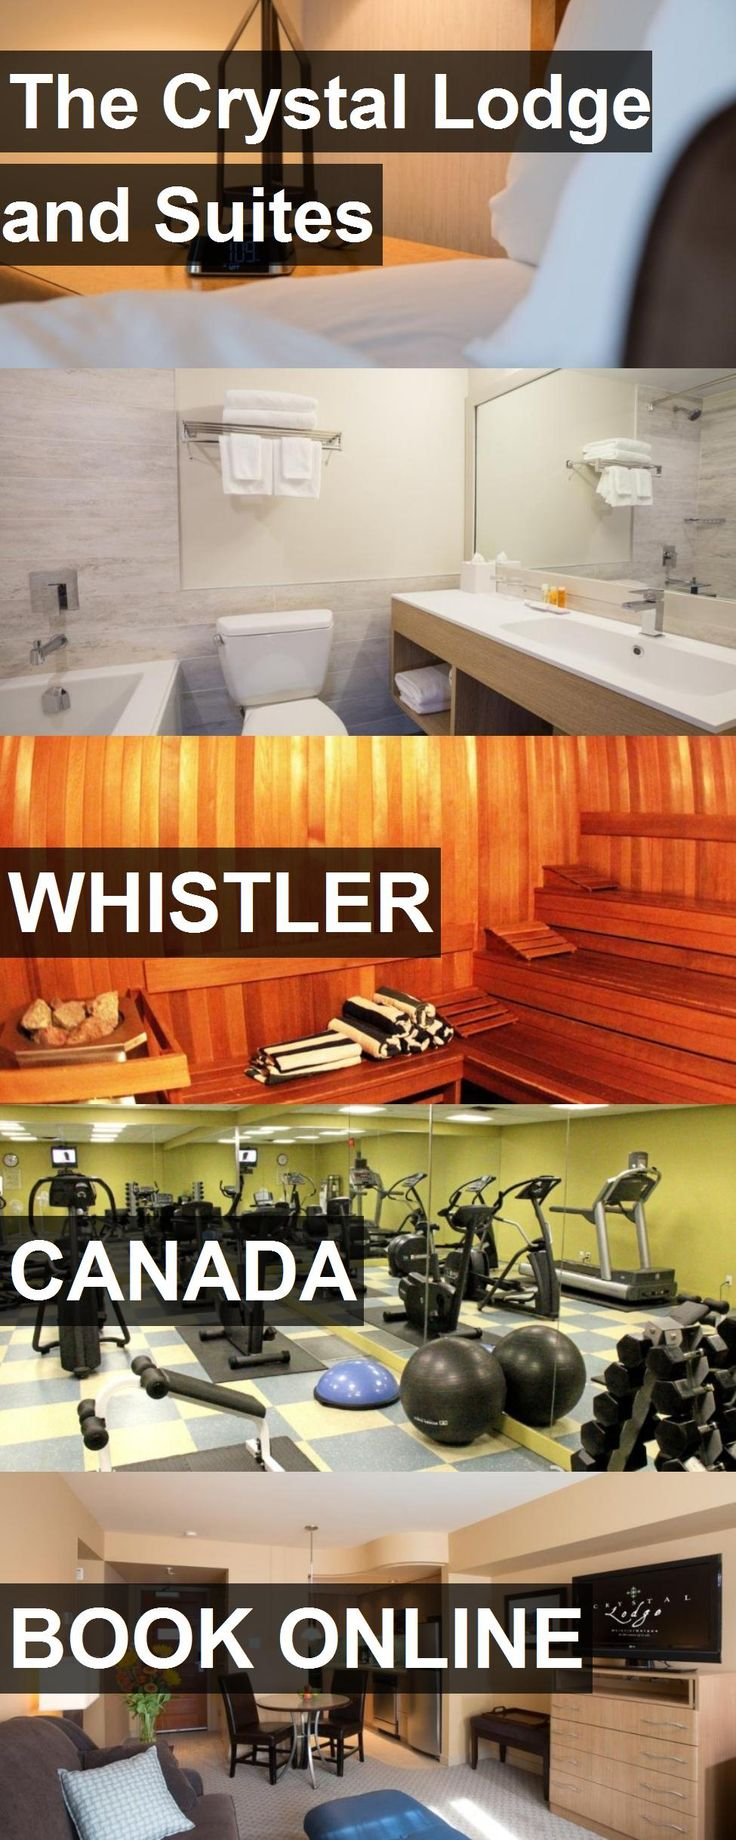 Hotel The Crystal Lodge and Suites in Whistler, Canada. For more information, photos, reviews and best prices please follow the link. #Canada #Whistler #TheCrystalLodgeandSuites #hotel #travel #vacation